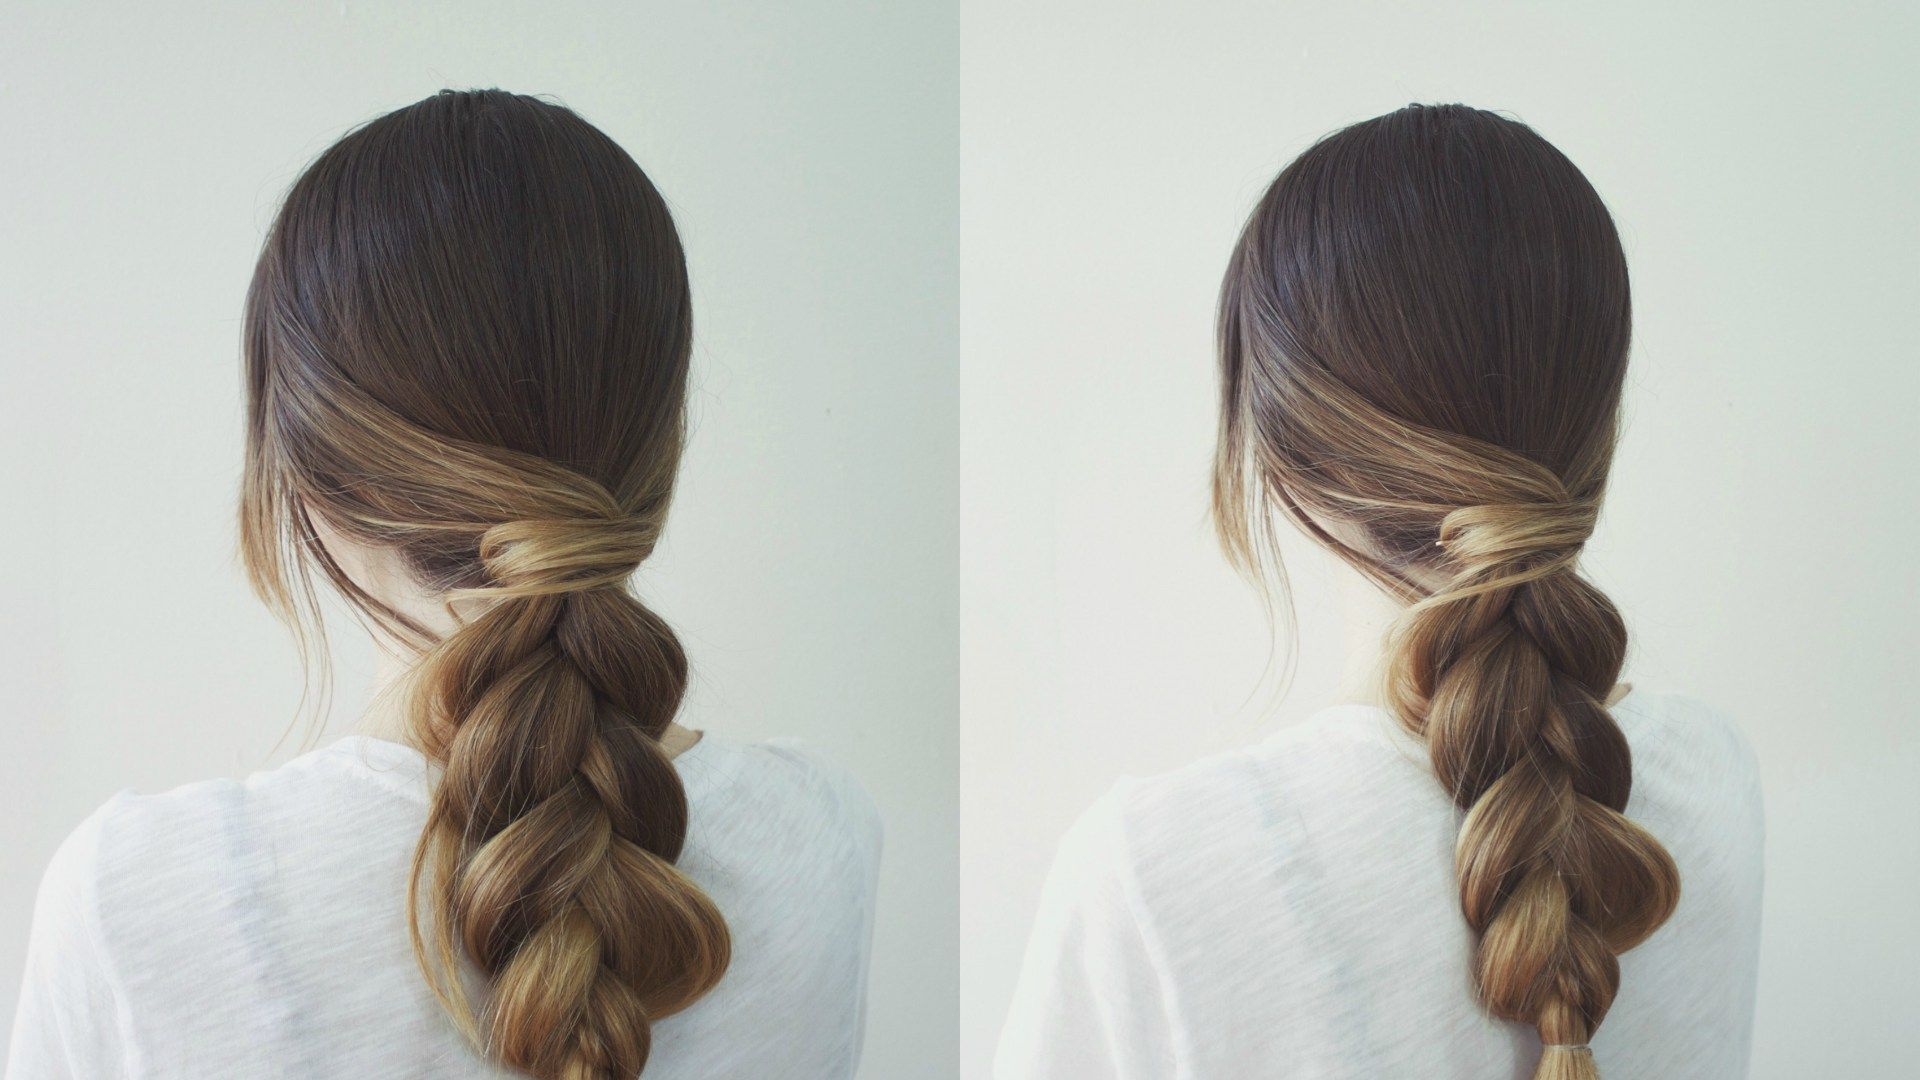 Classic Braid With A Simple Twist | Diy hairstyles, Hair looks, Casual hairstyles